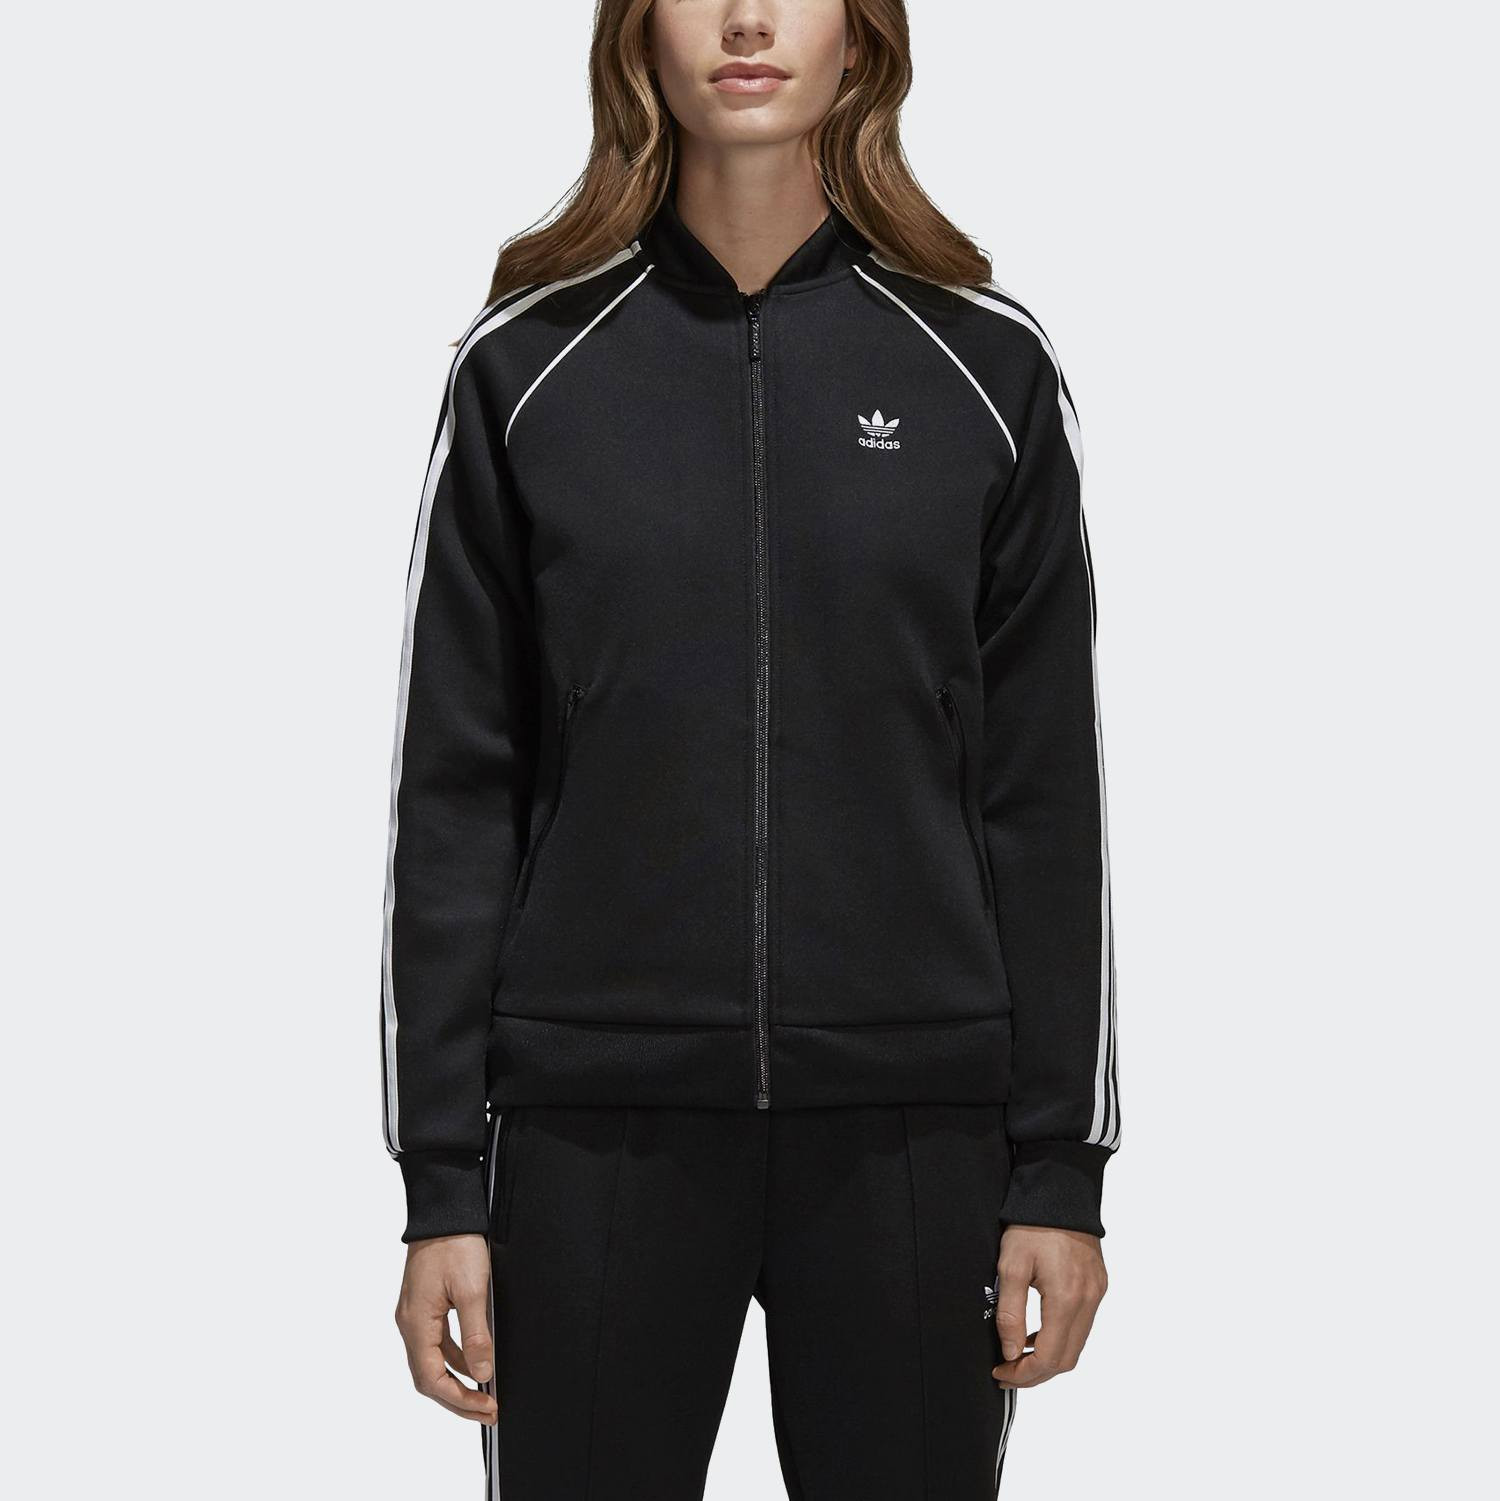 adidas Originals Women's SST Track Jacket (9000001346_1469)